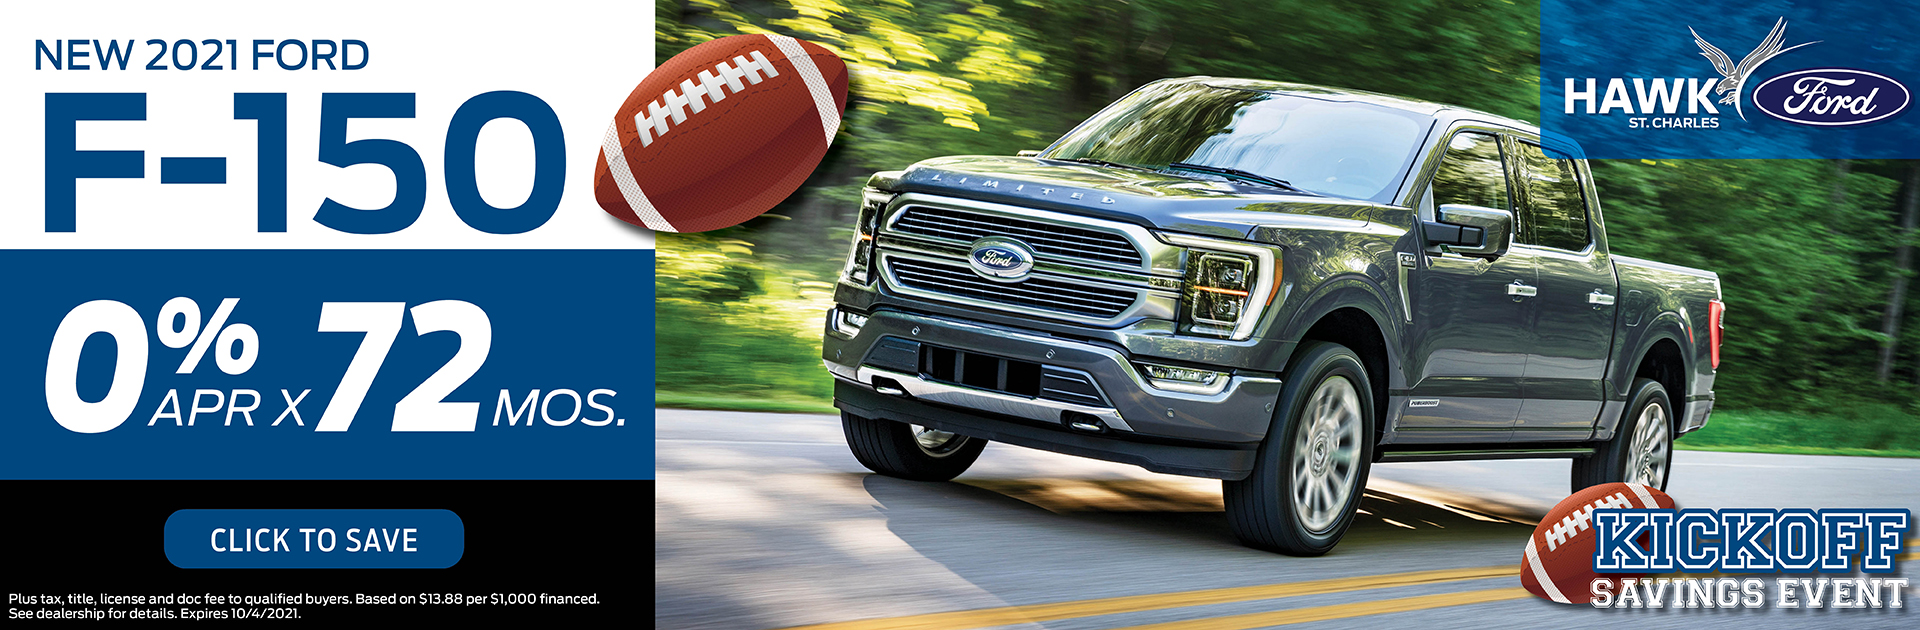 2021 Ford Escape Finance Offer | Hawk Ford of St. Charles